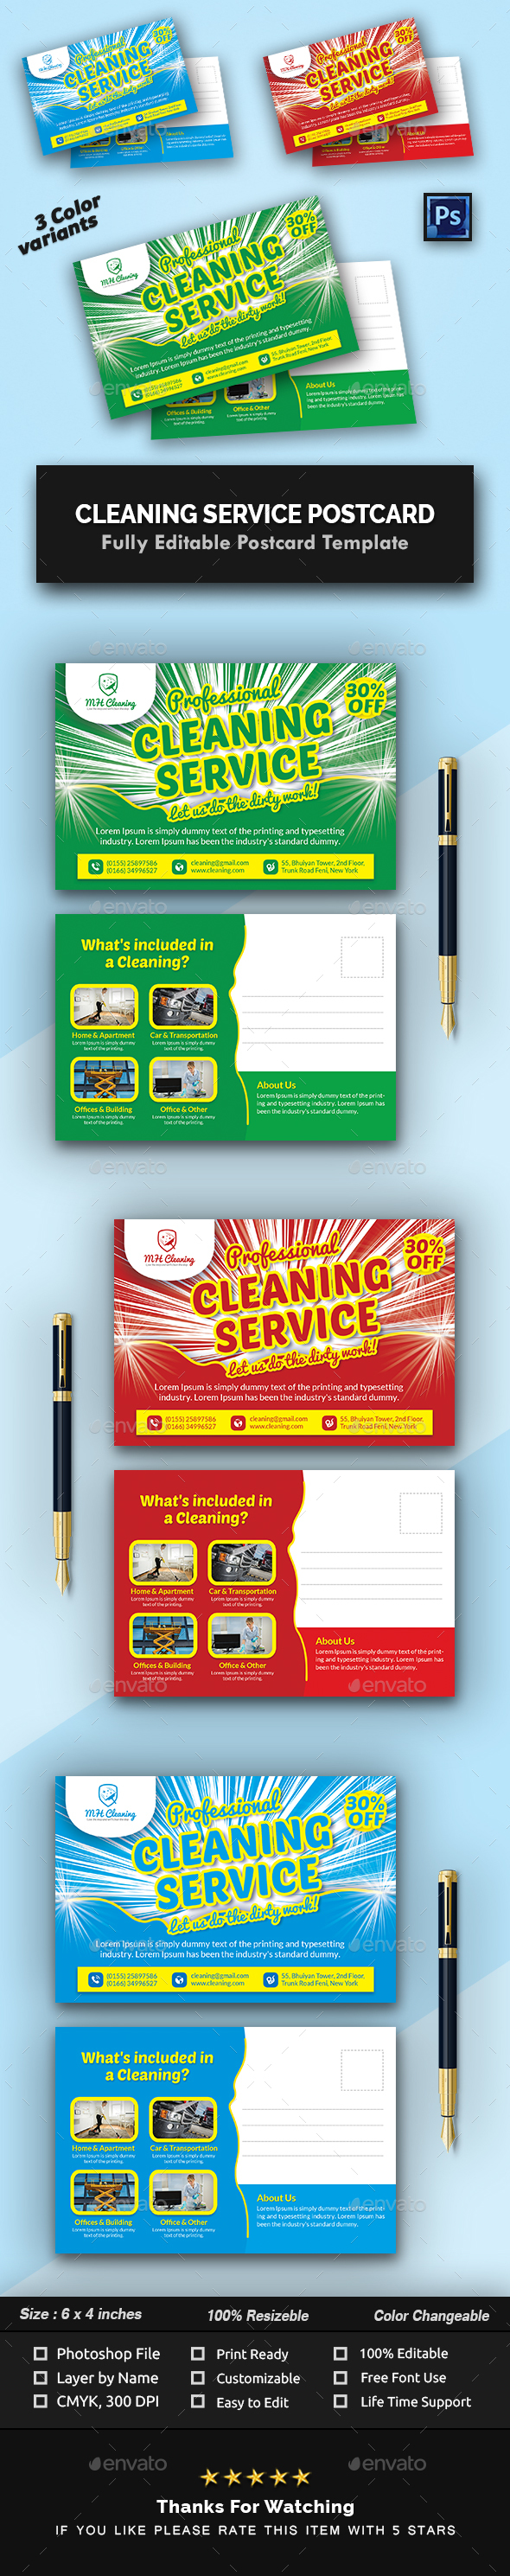 Cleaning Services Postcard Templates - Cards & Invites Print Templates